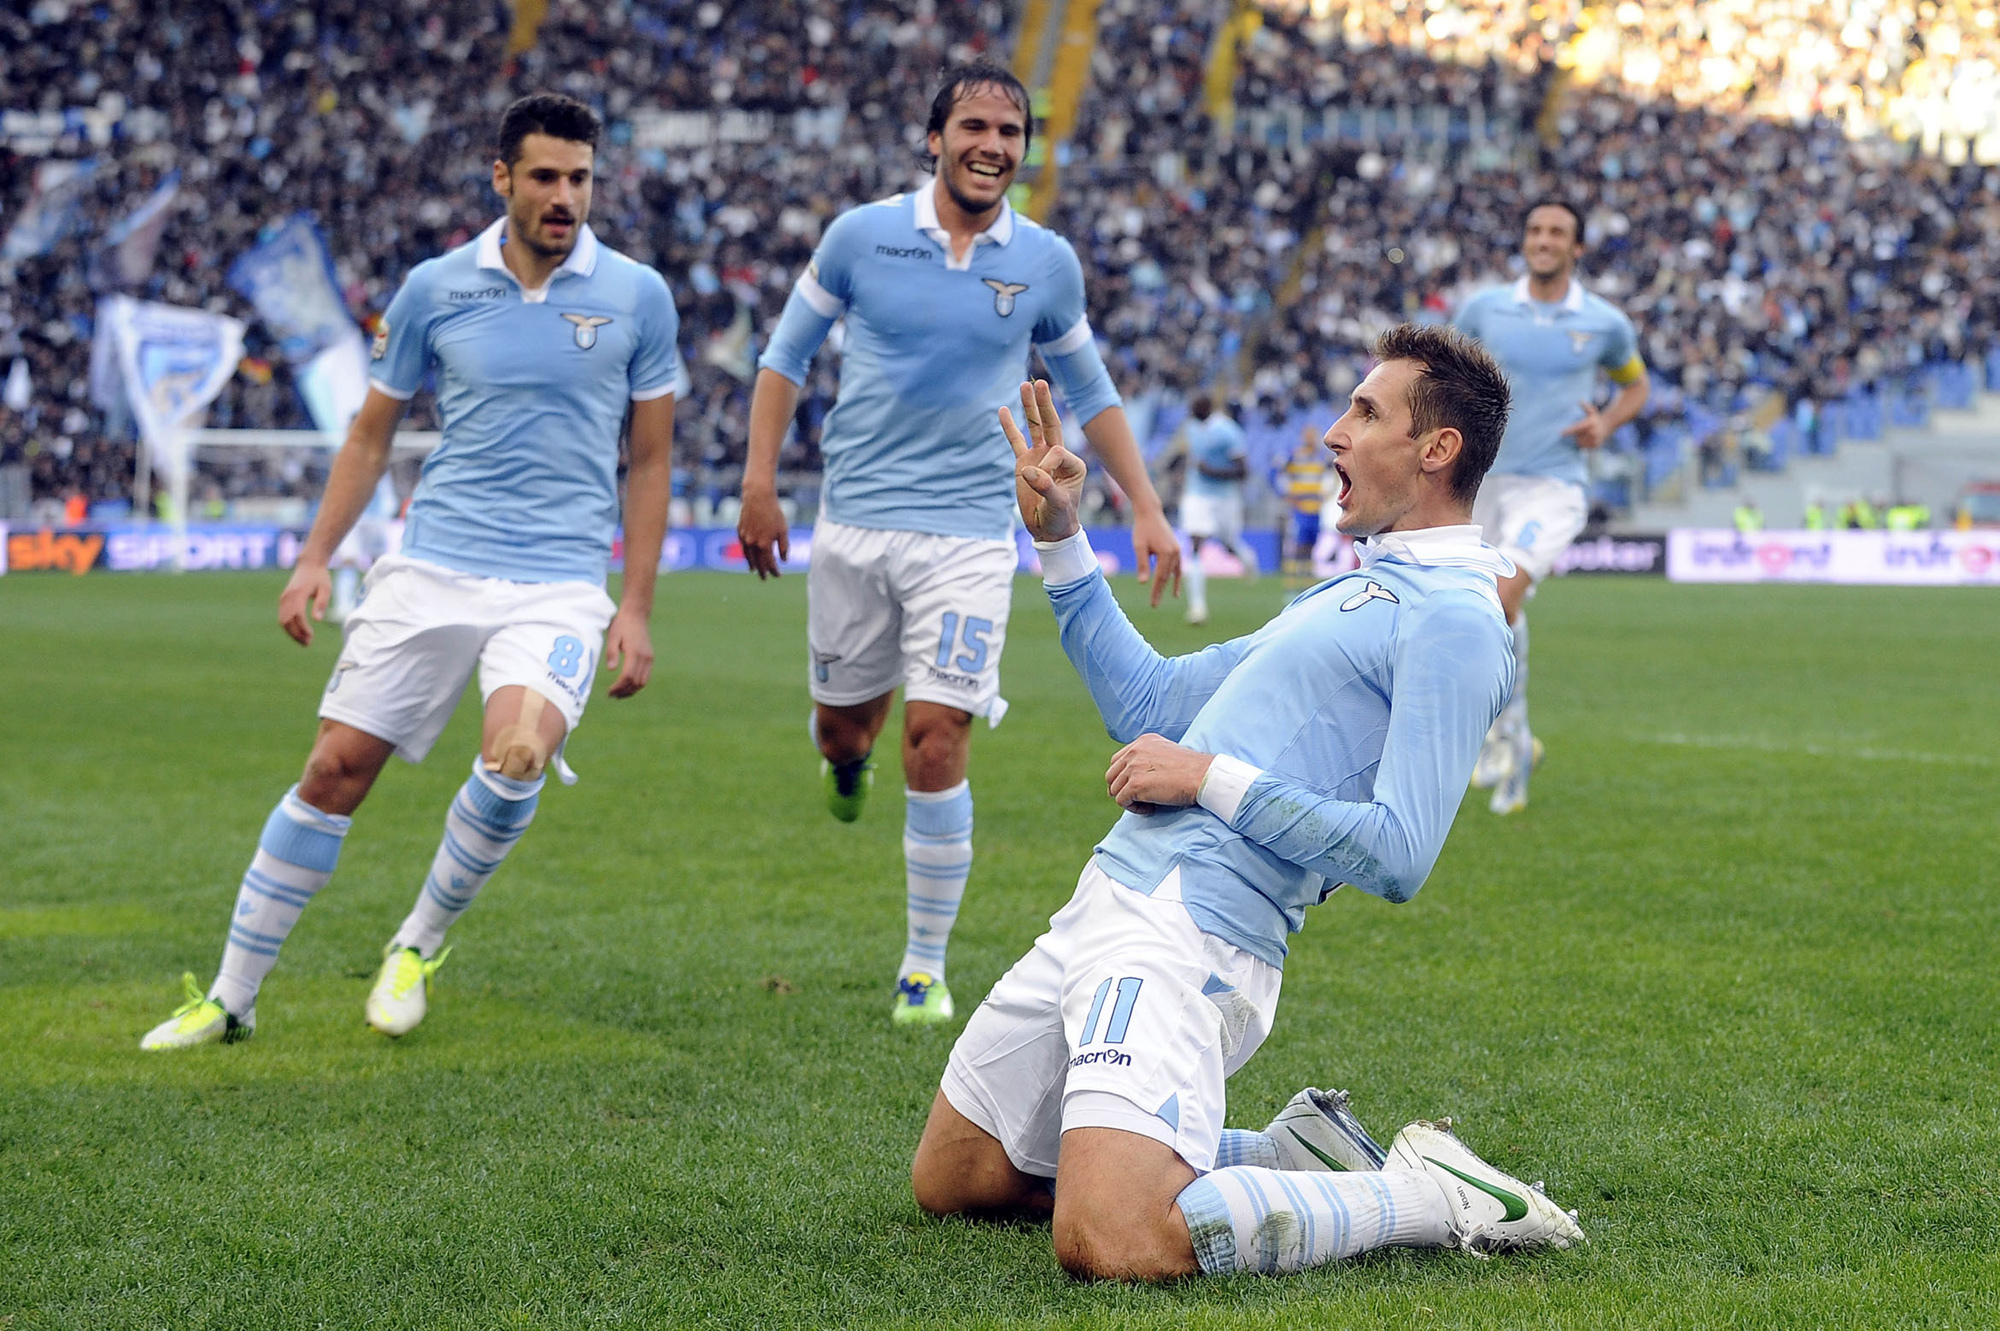 Lazio VS Palermo BETTING TIPS (23-04-2017)